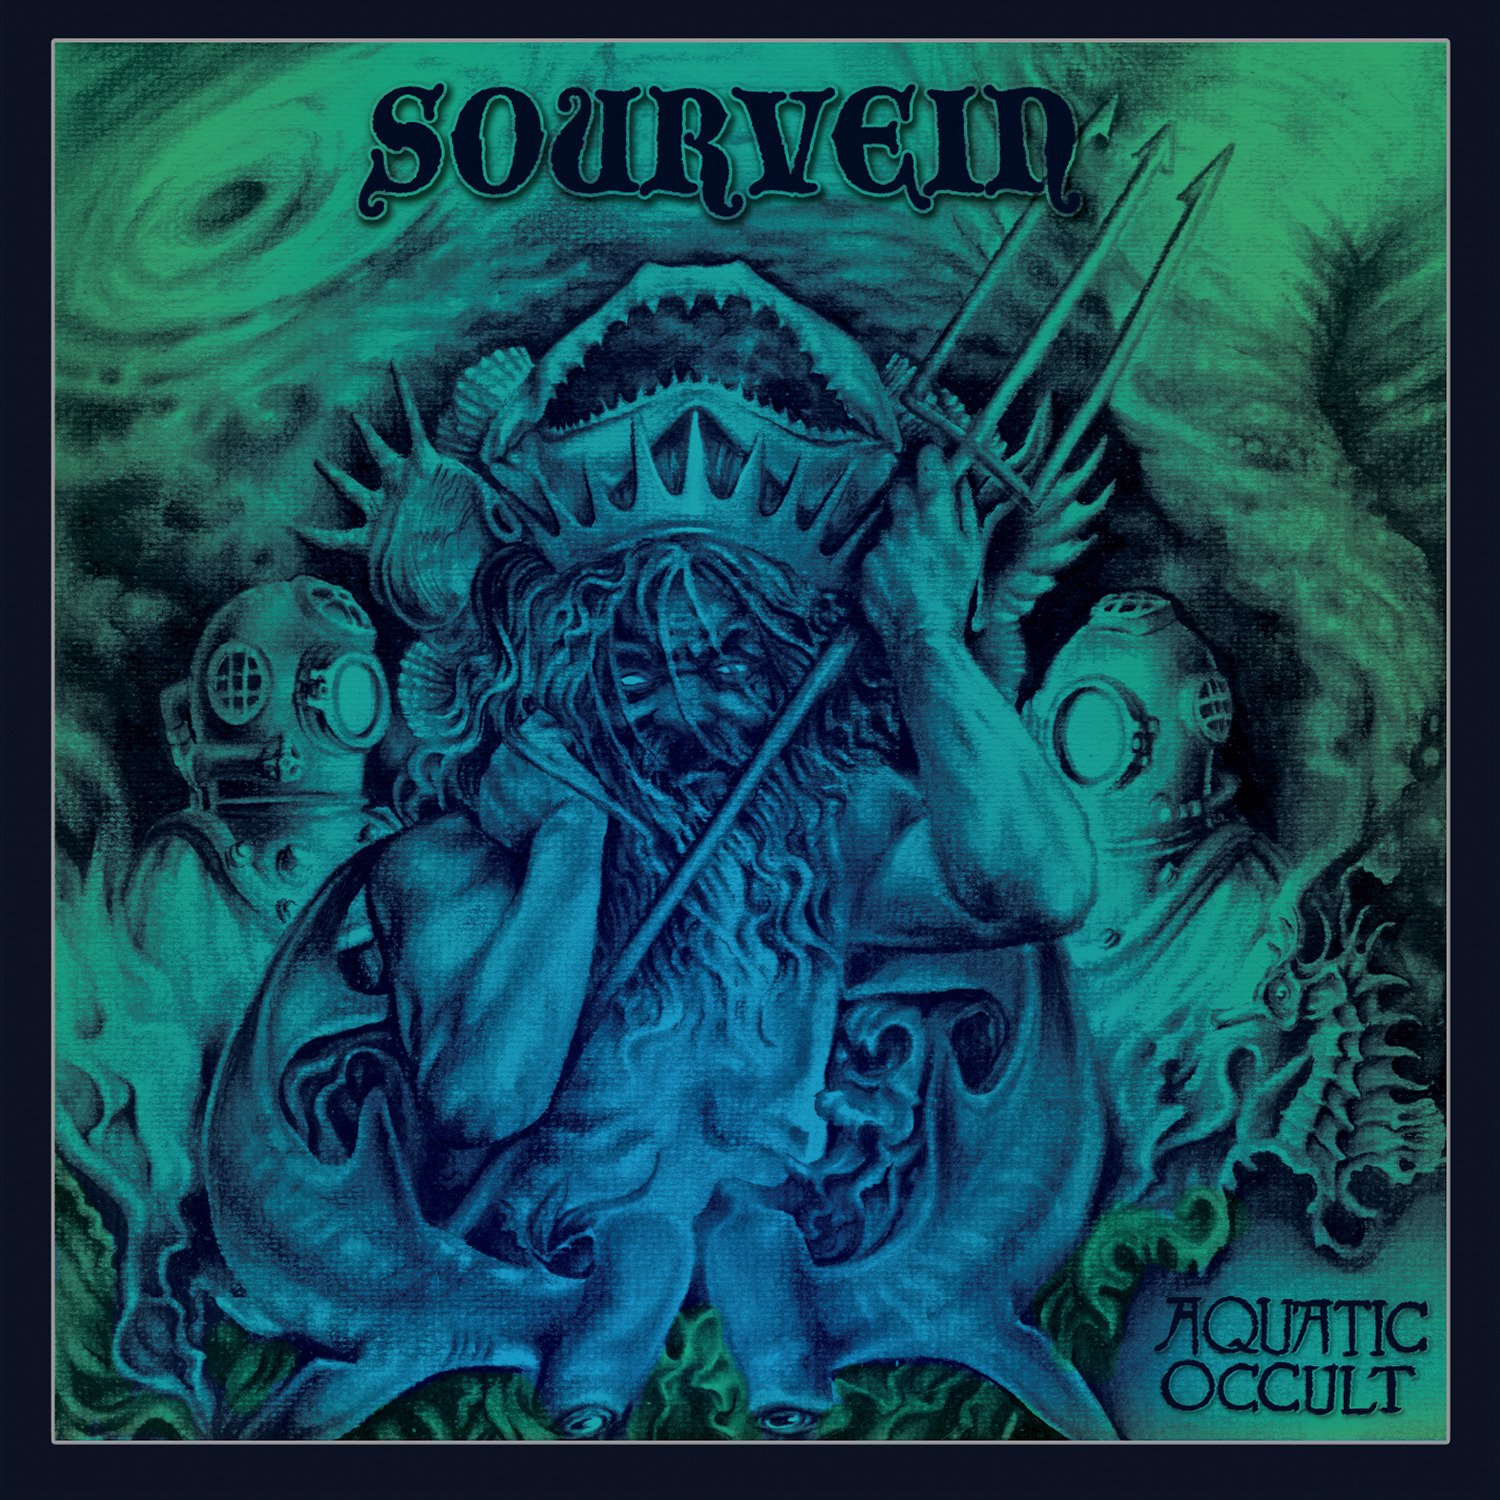 SOURVEIN - AQUATIC OCCULT (LTD)